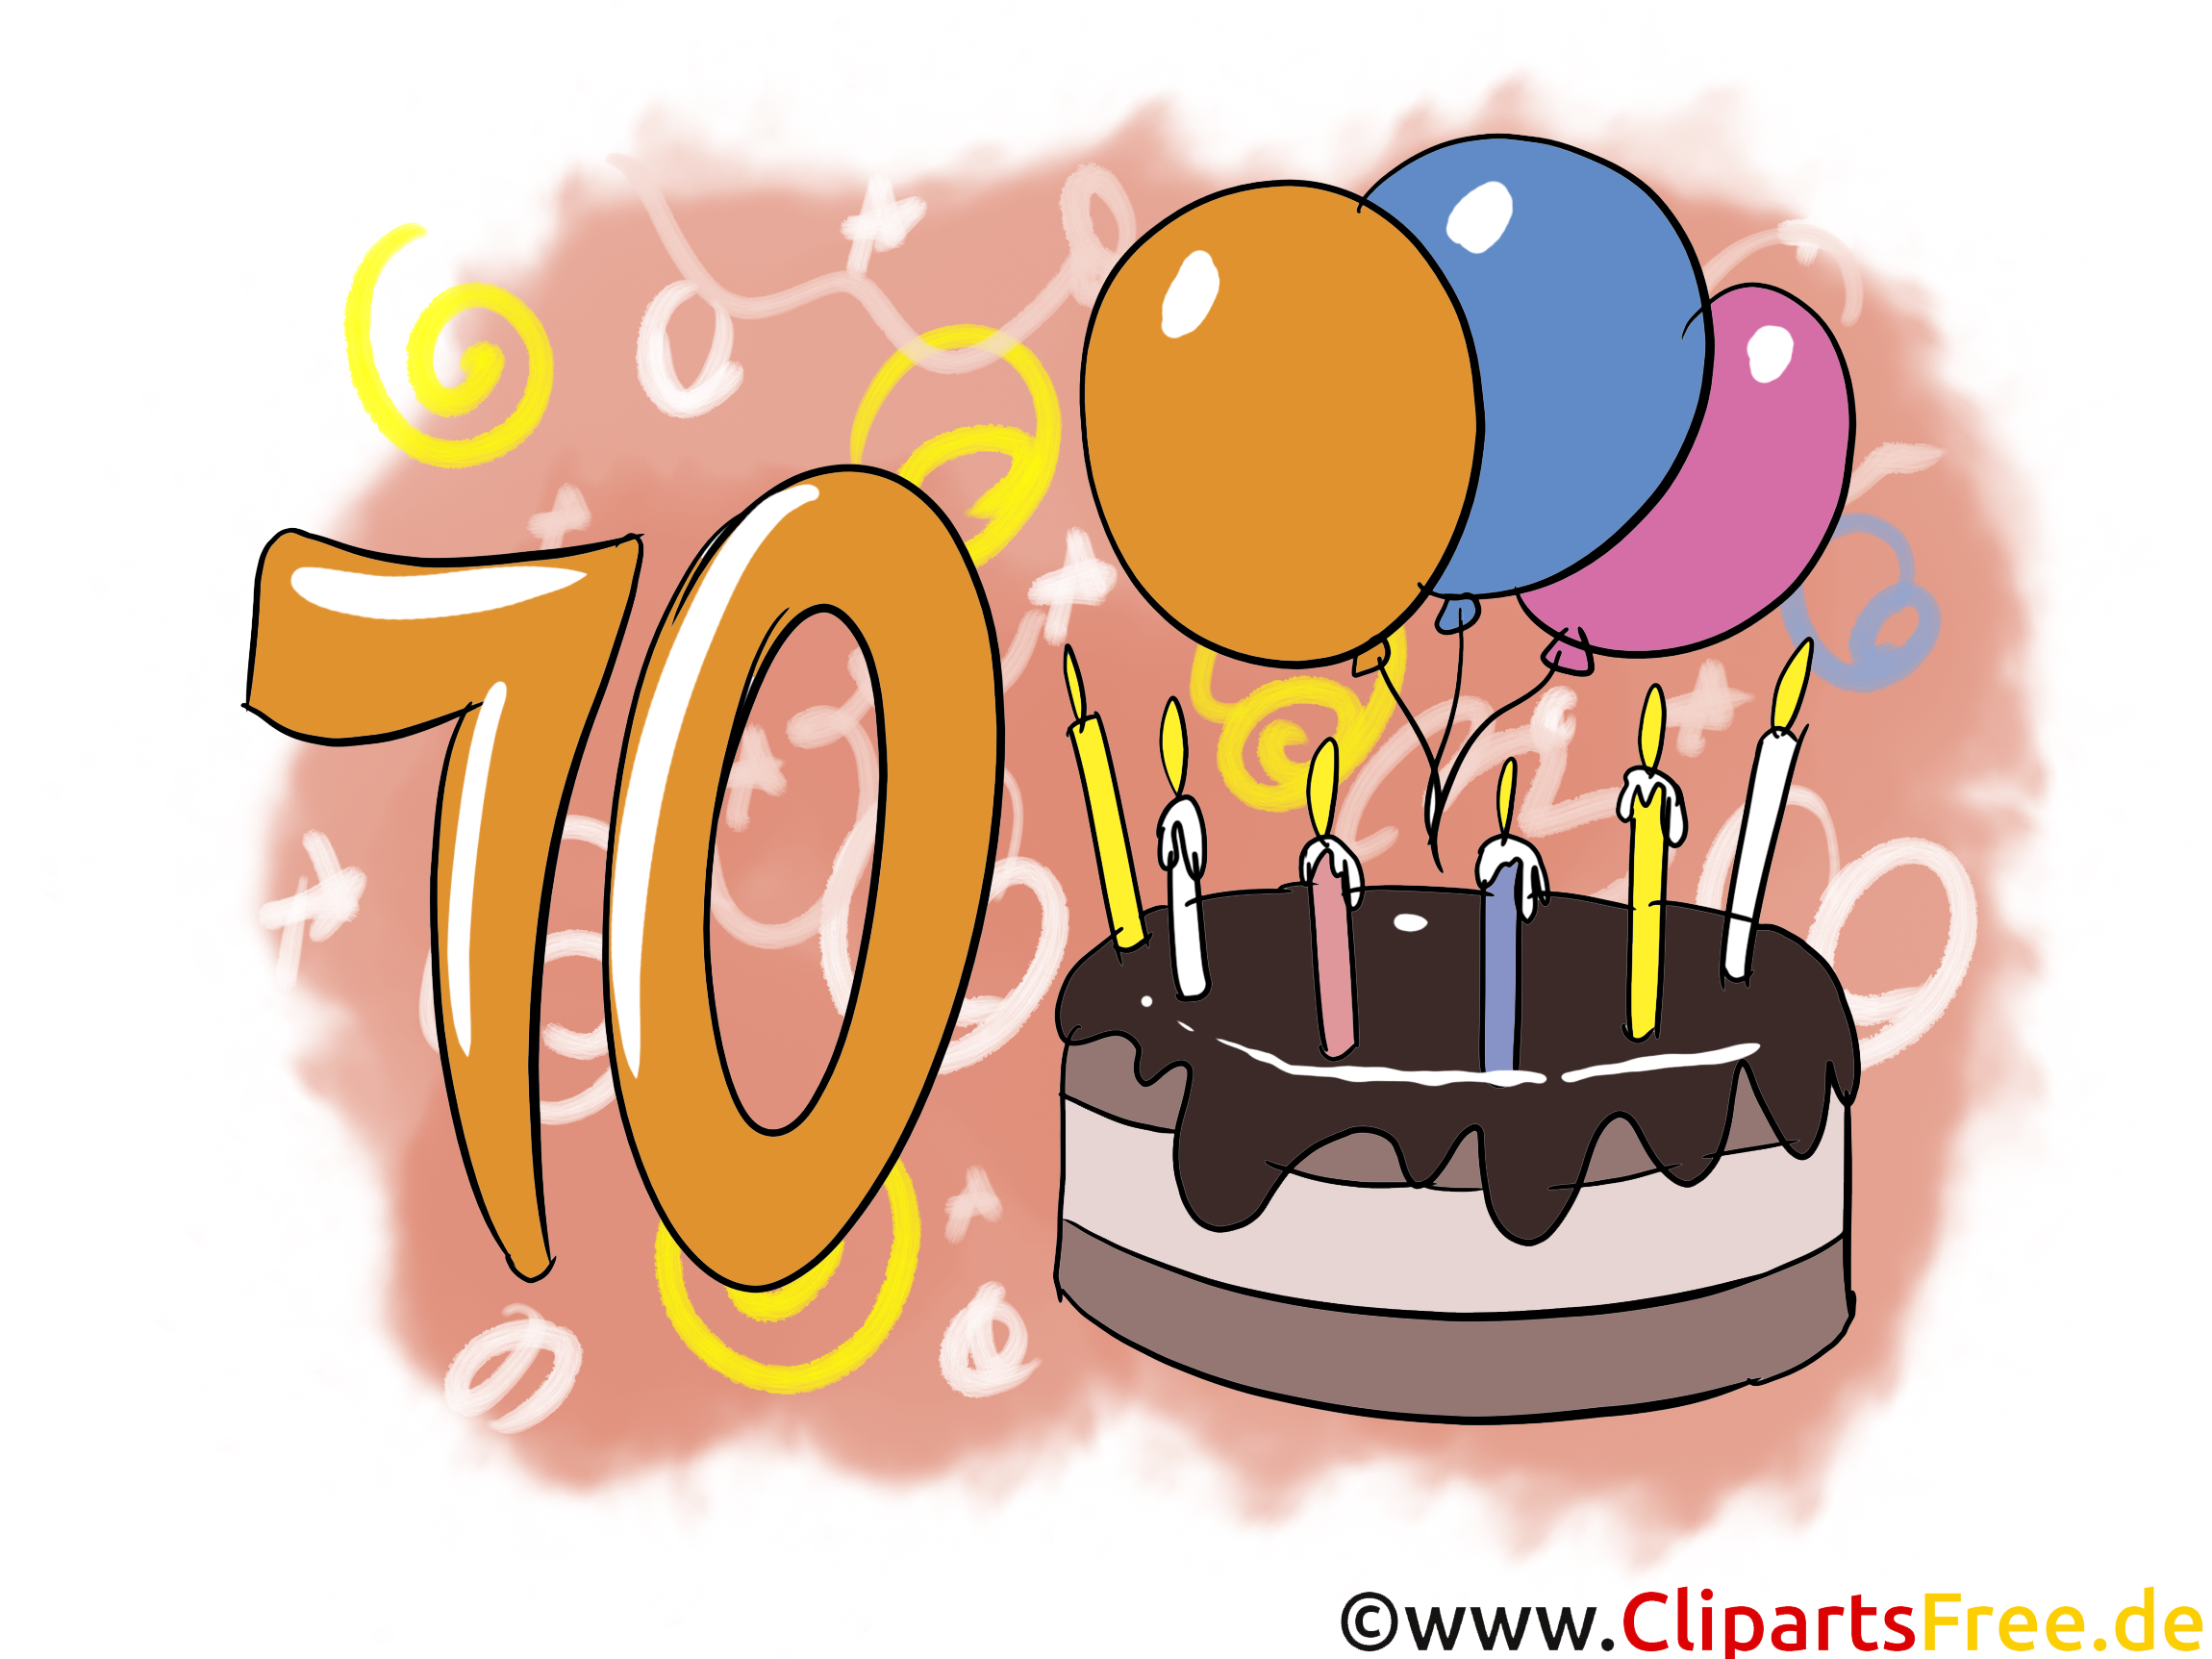 10 ans illustration gratuite anniversaire clipart anniversaire dessin picture image. Black Bedroom Furniture Sets. Home Design Ideas